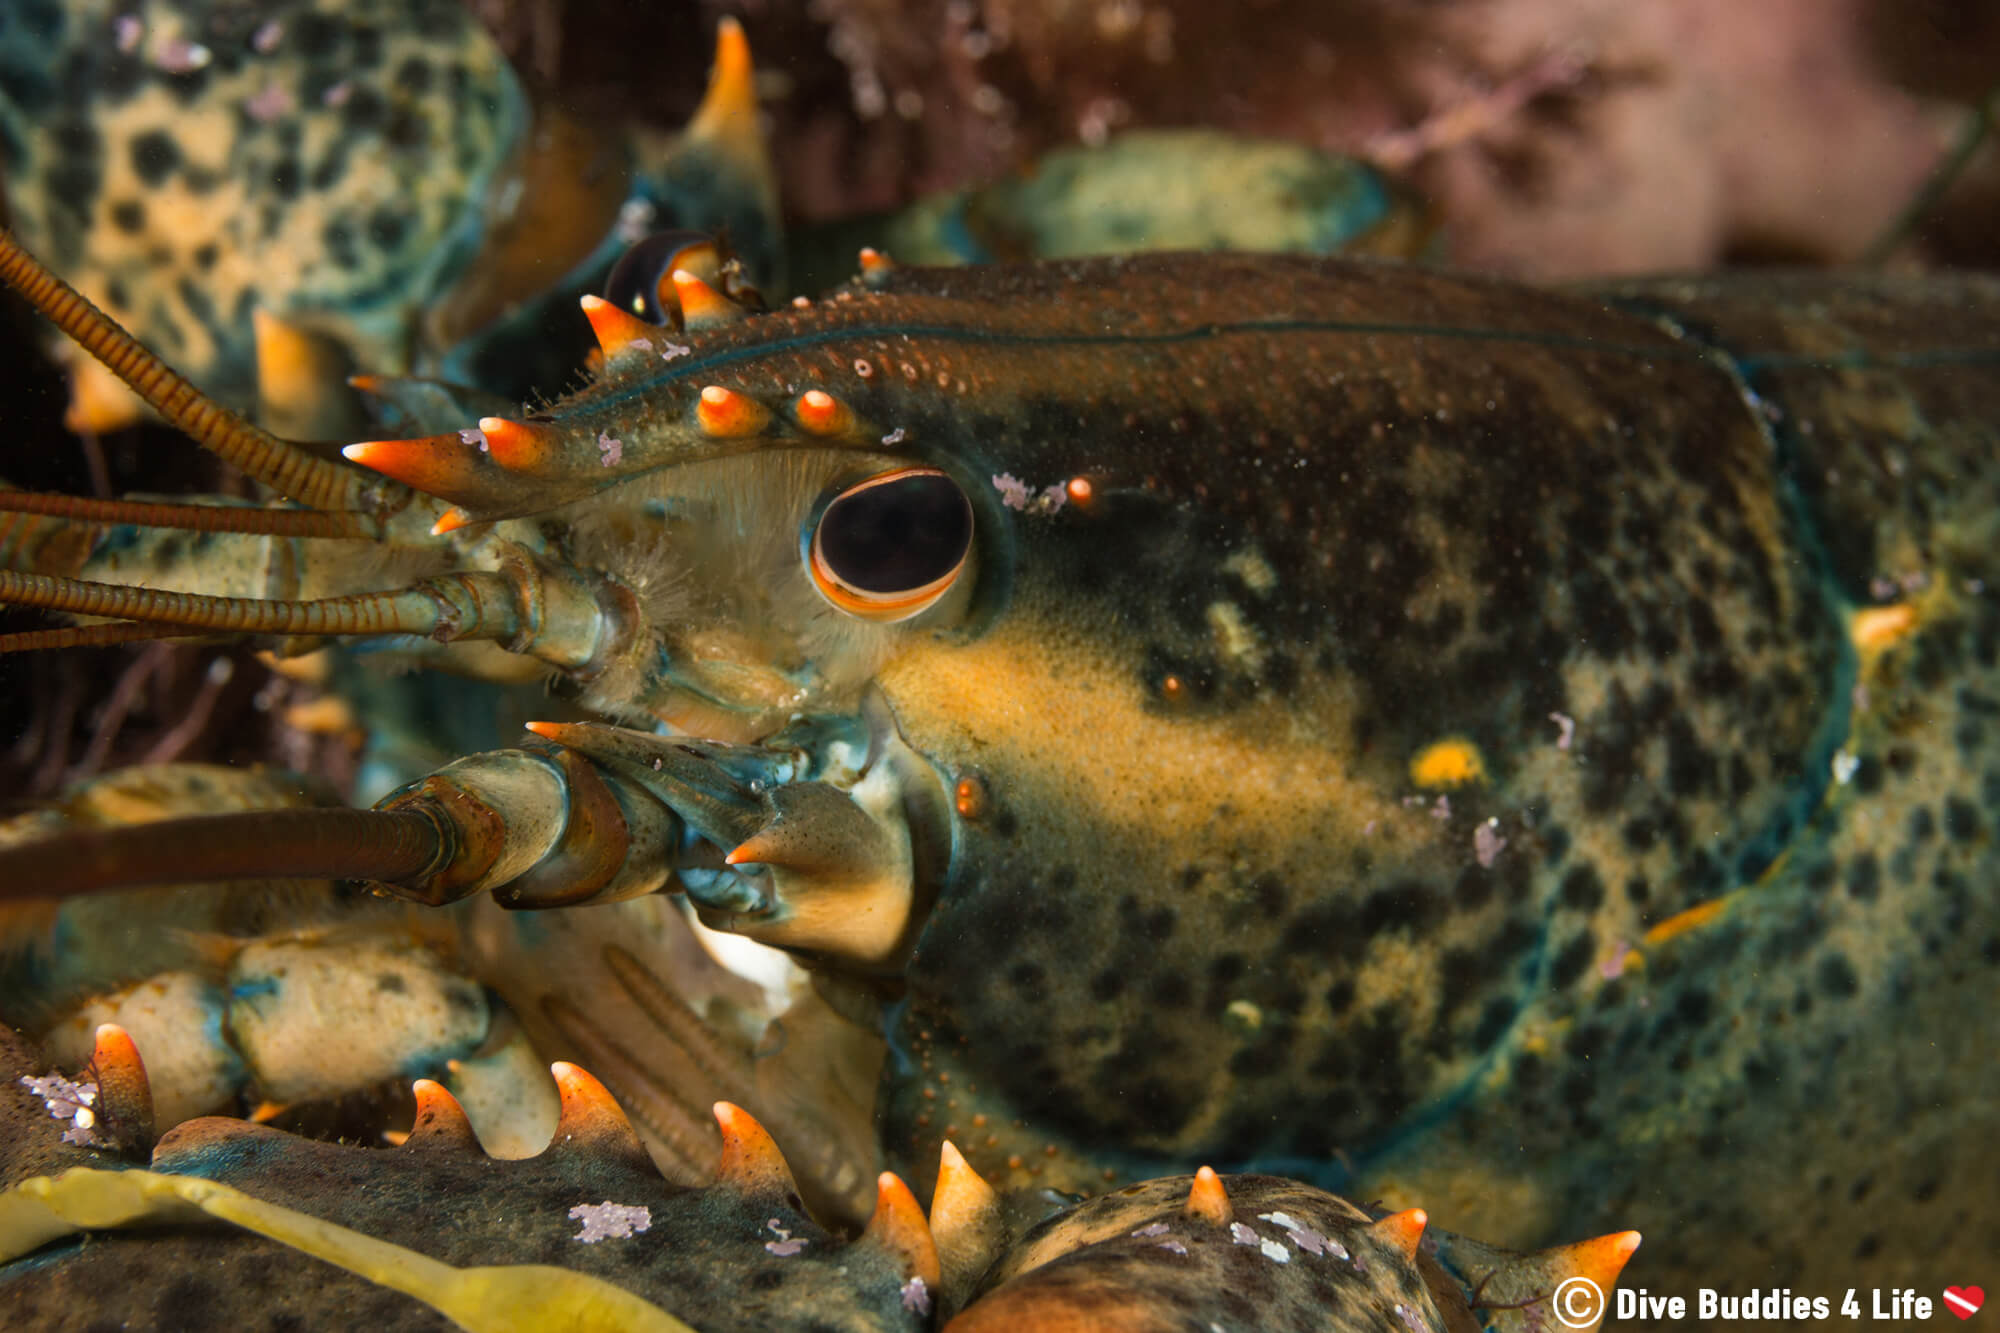 Scuba Diving With An American Lobster From The Shores Of Halifax, Nova Scotia In Canada